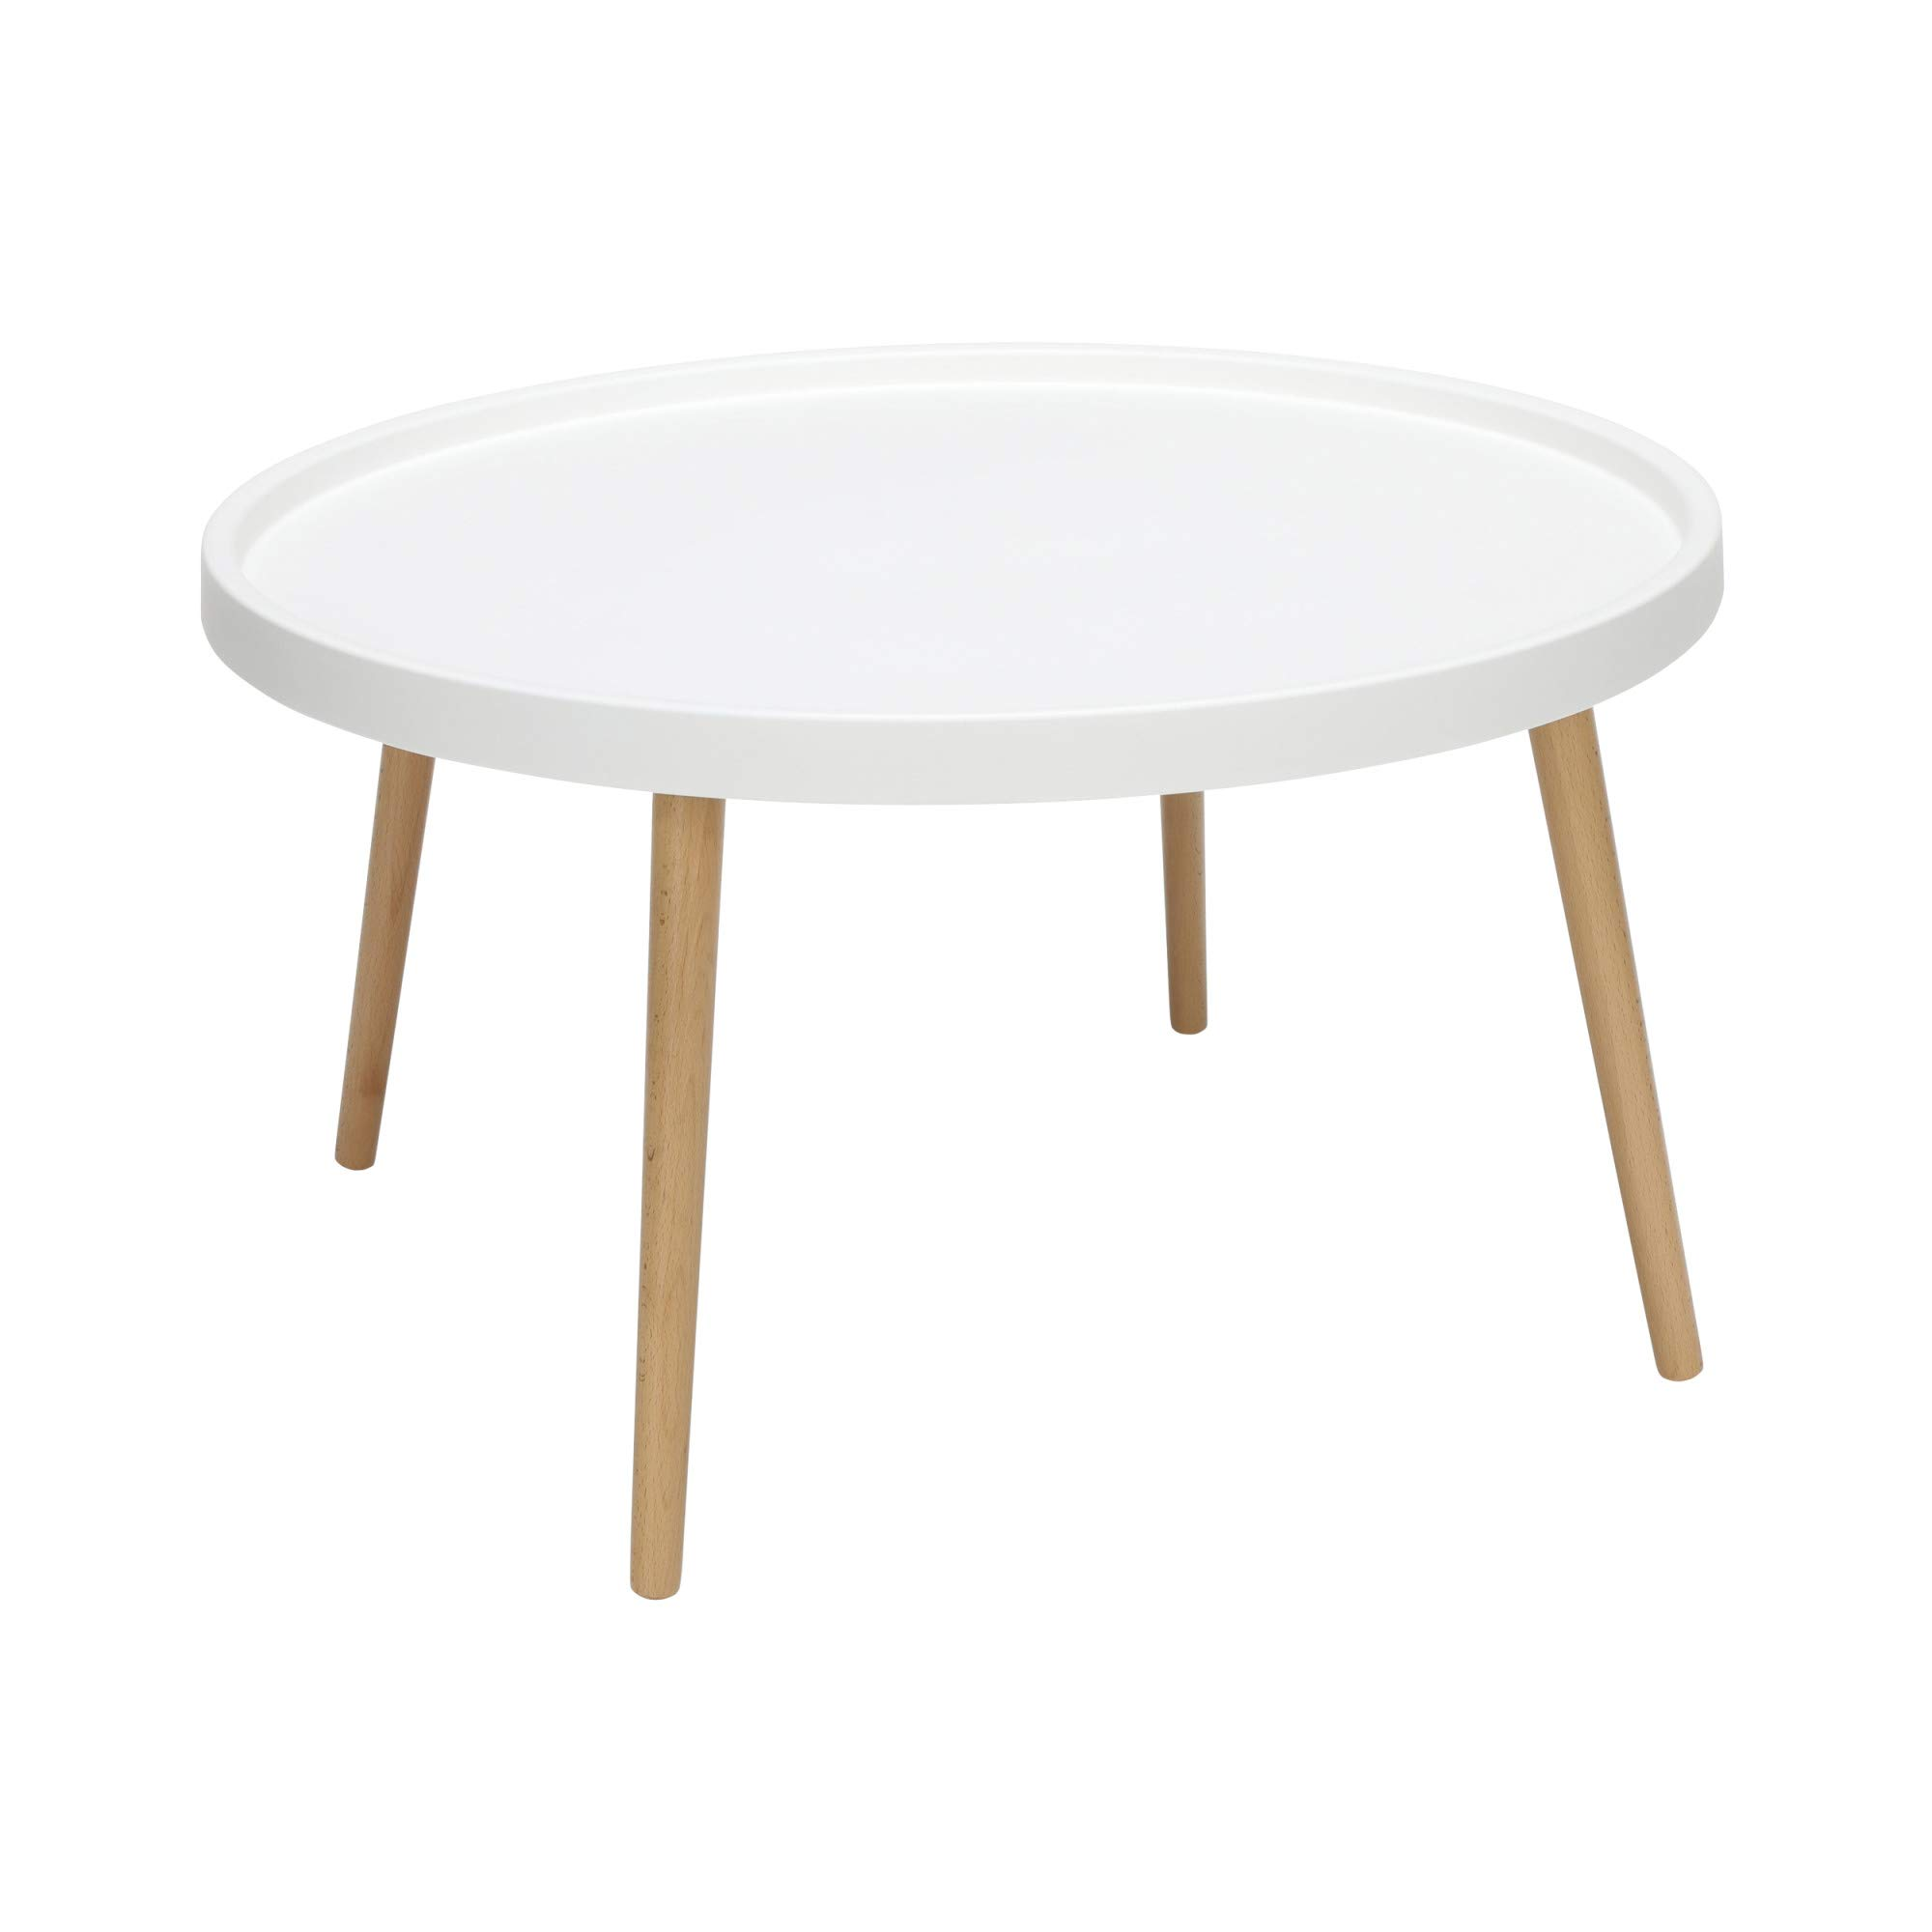 OFM 161 Collection Mid Century Modern Plastic Coffee Table, Solid Wood Legs, in White by OFM